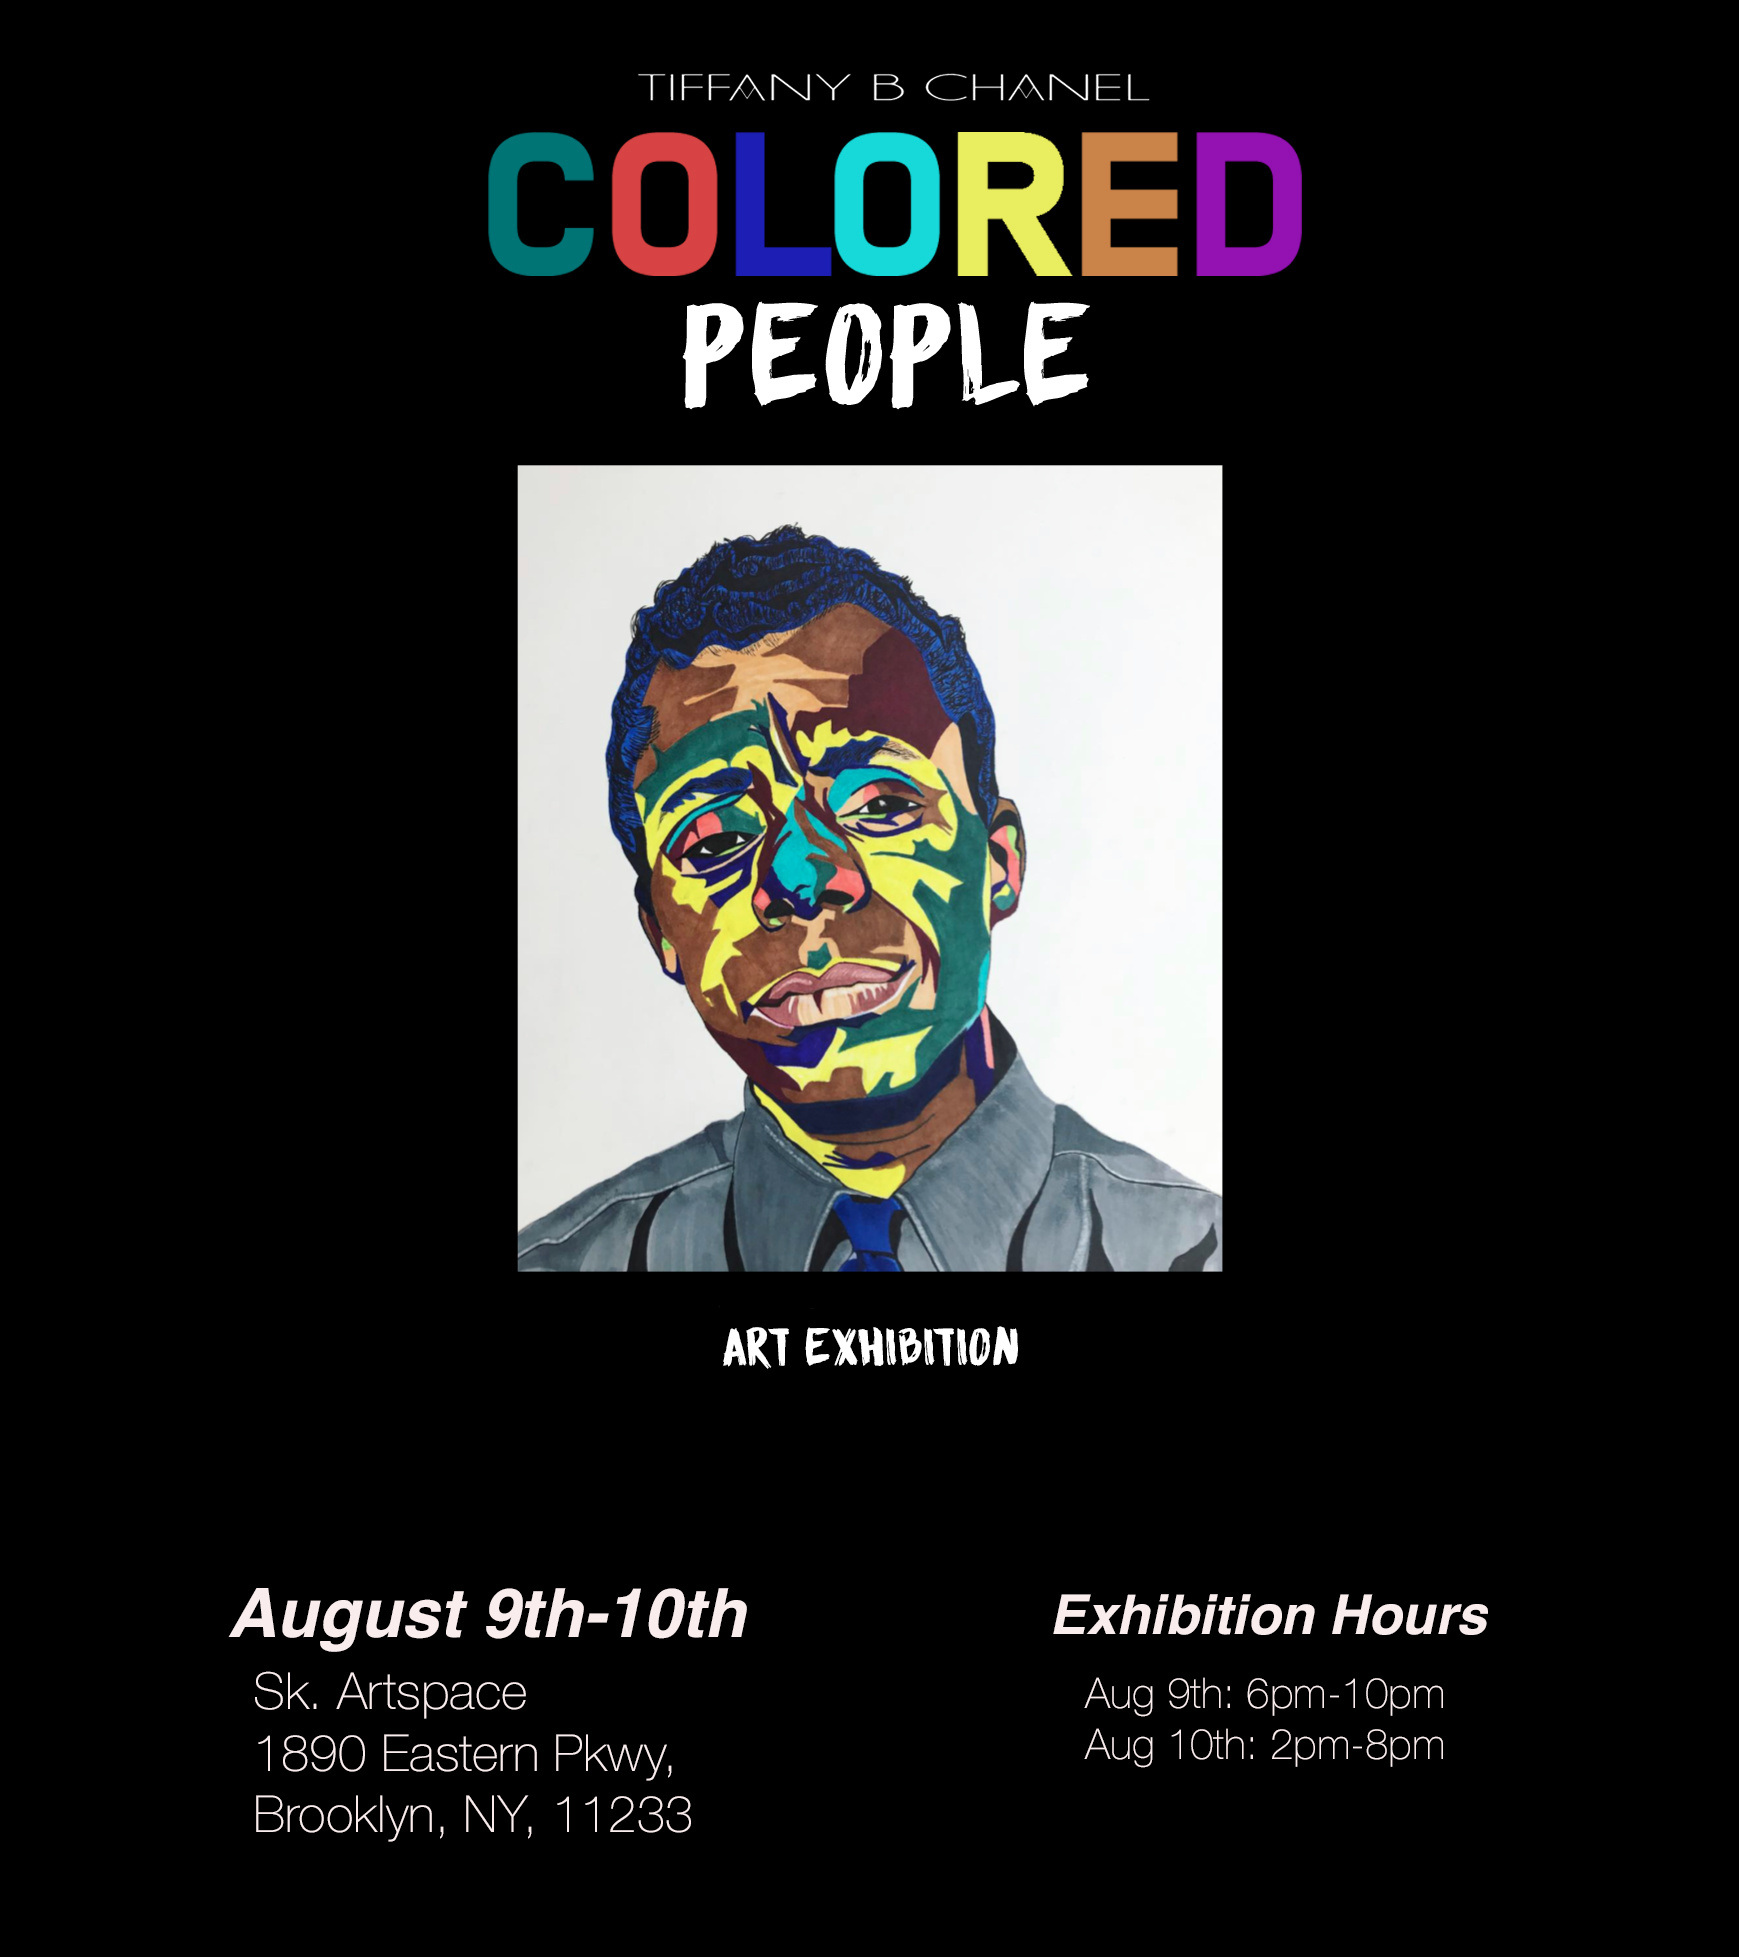 colored+people.jpg